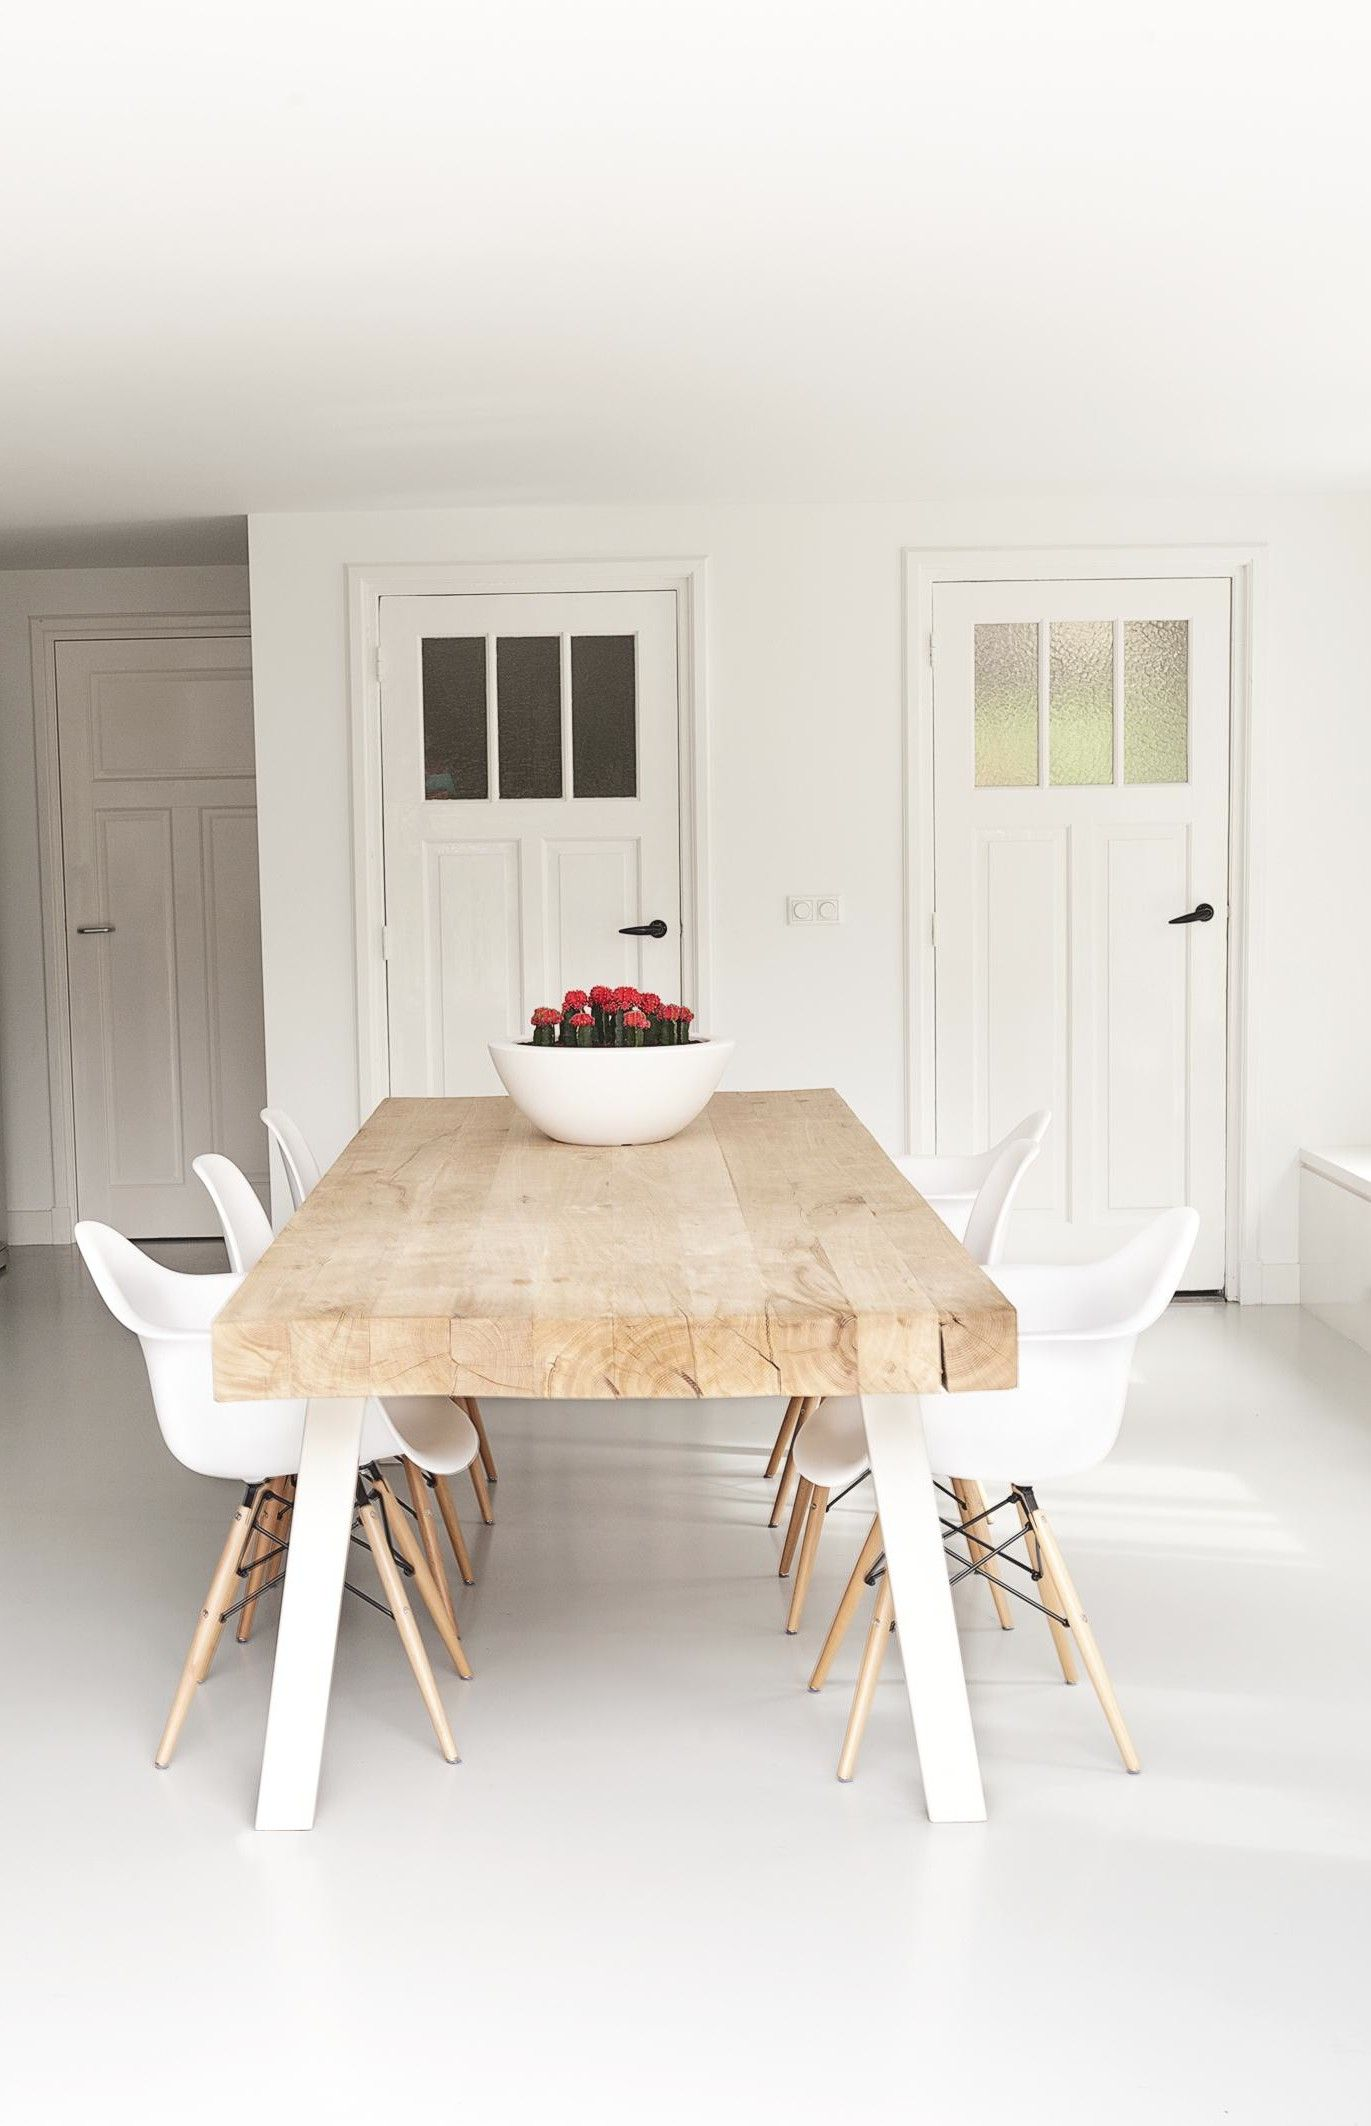 Ina S Eetkamer.How To Match Dining Chairs With A Designer Table Design Seeds